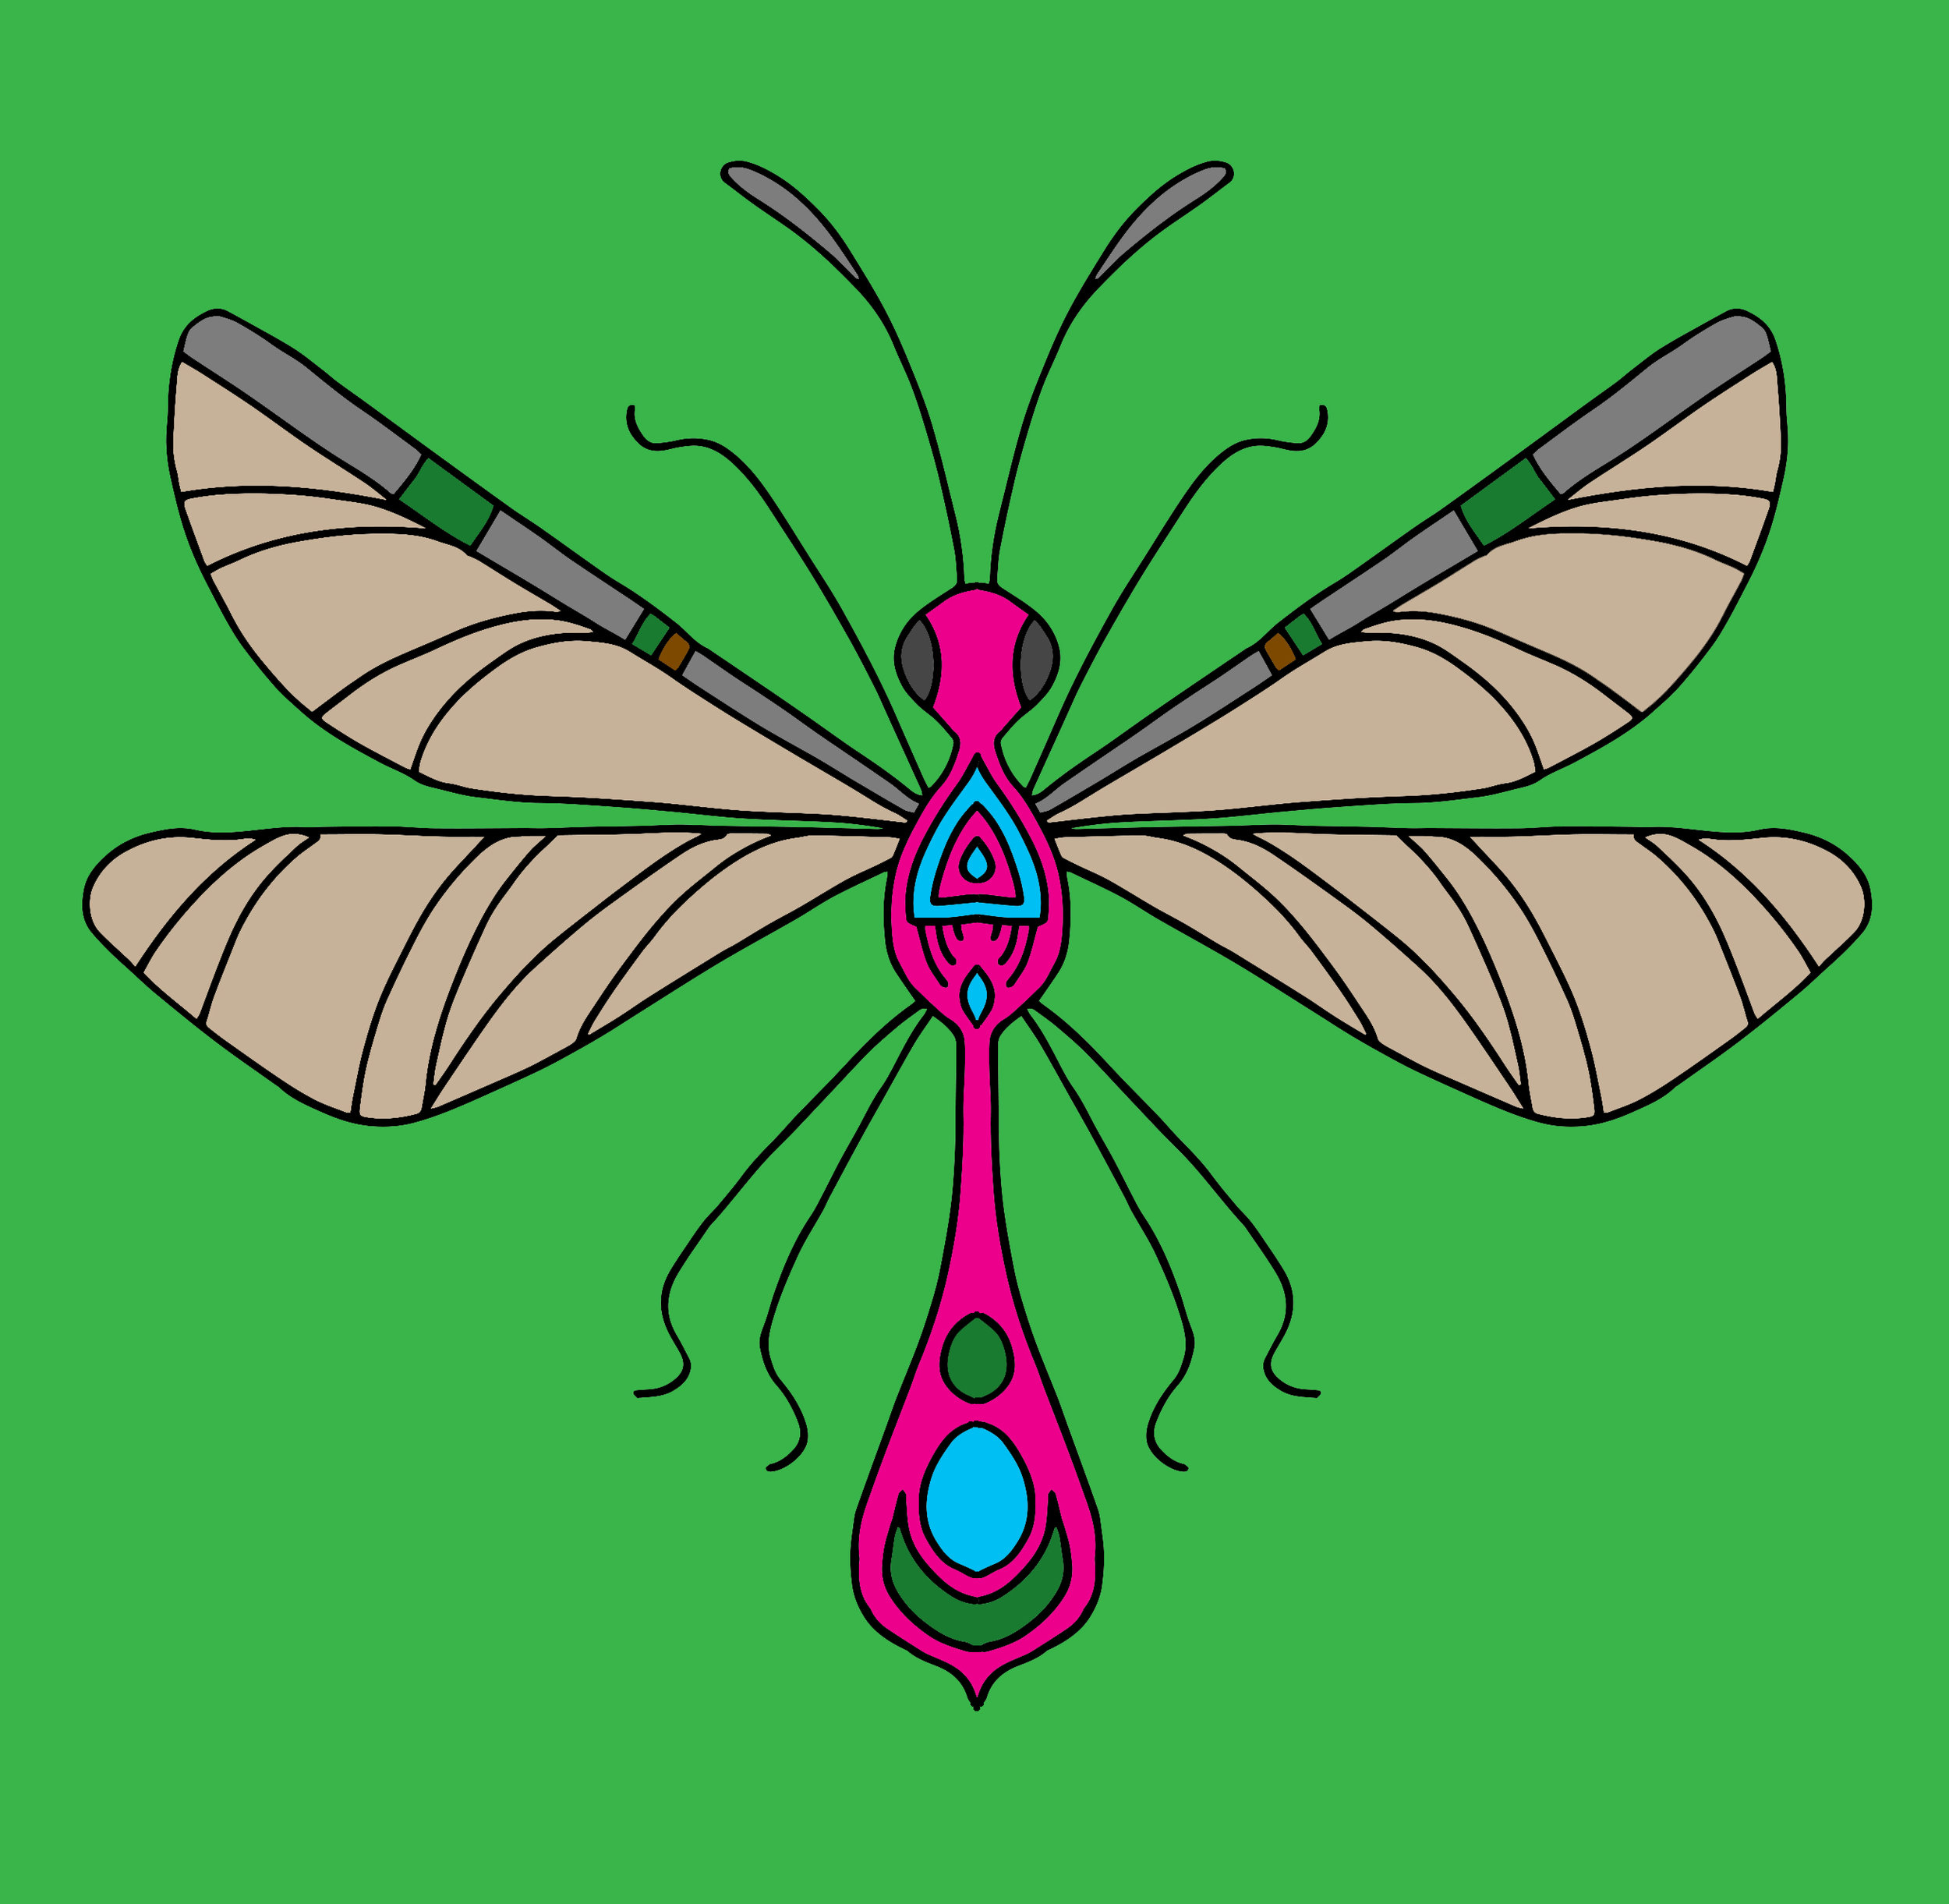 Mayfly 1 Color 1.jpg